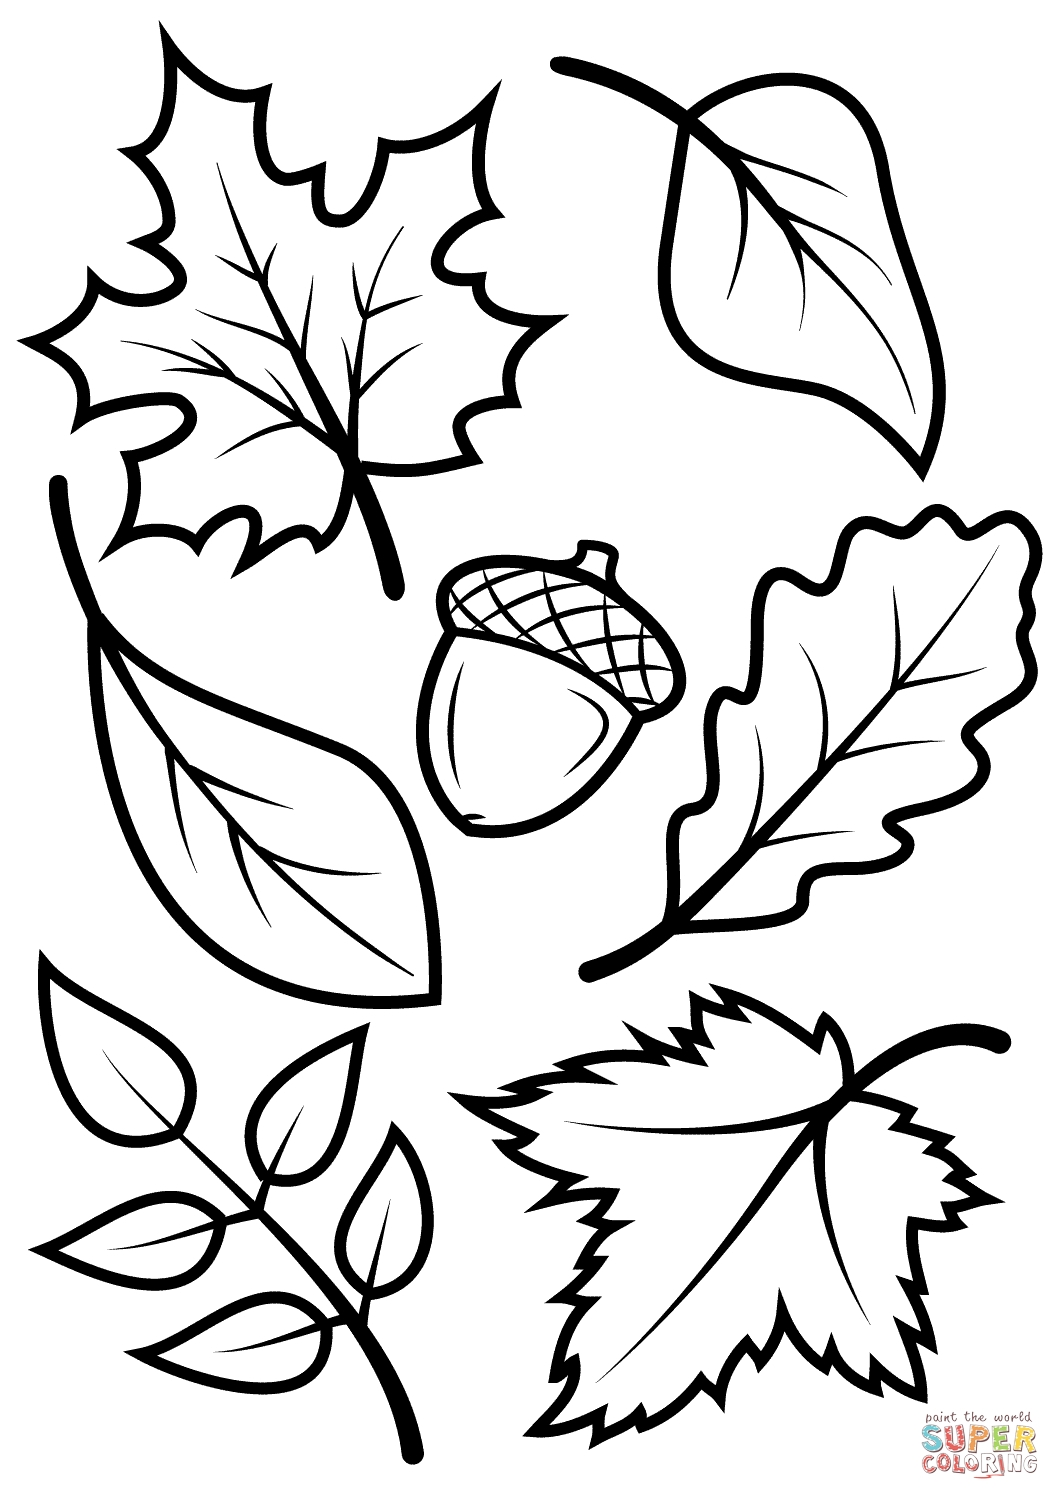 Fall Leaves Coloring Pages - Color Page Leaves Fall Leaves and Acorn Coloring Page